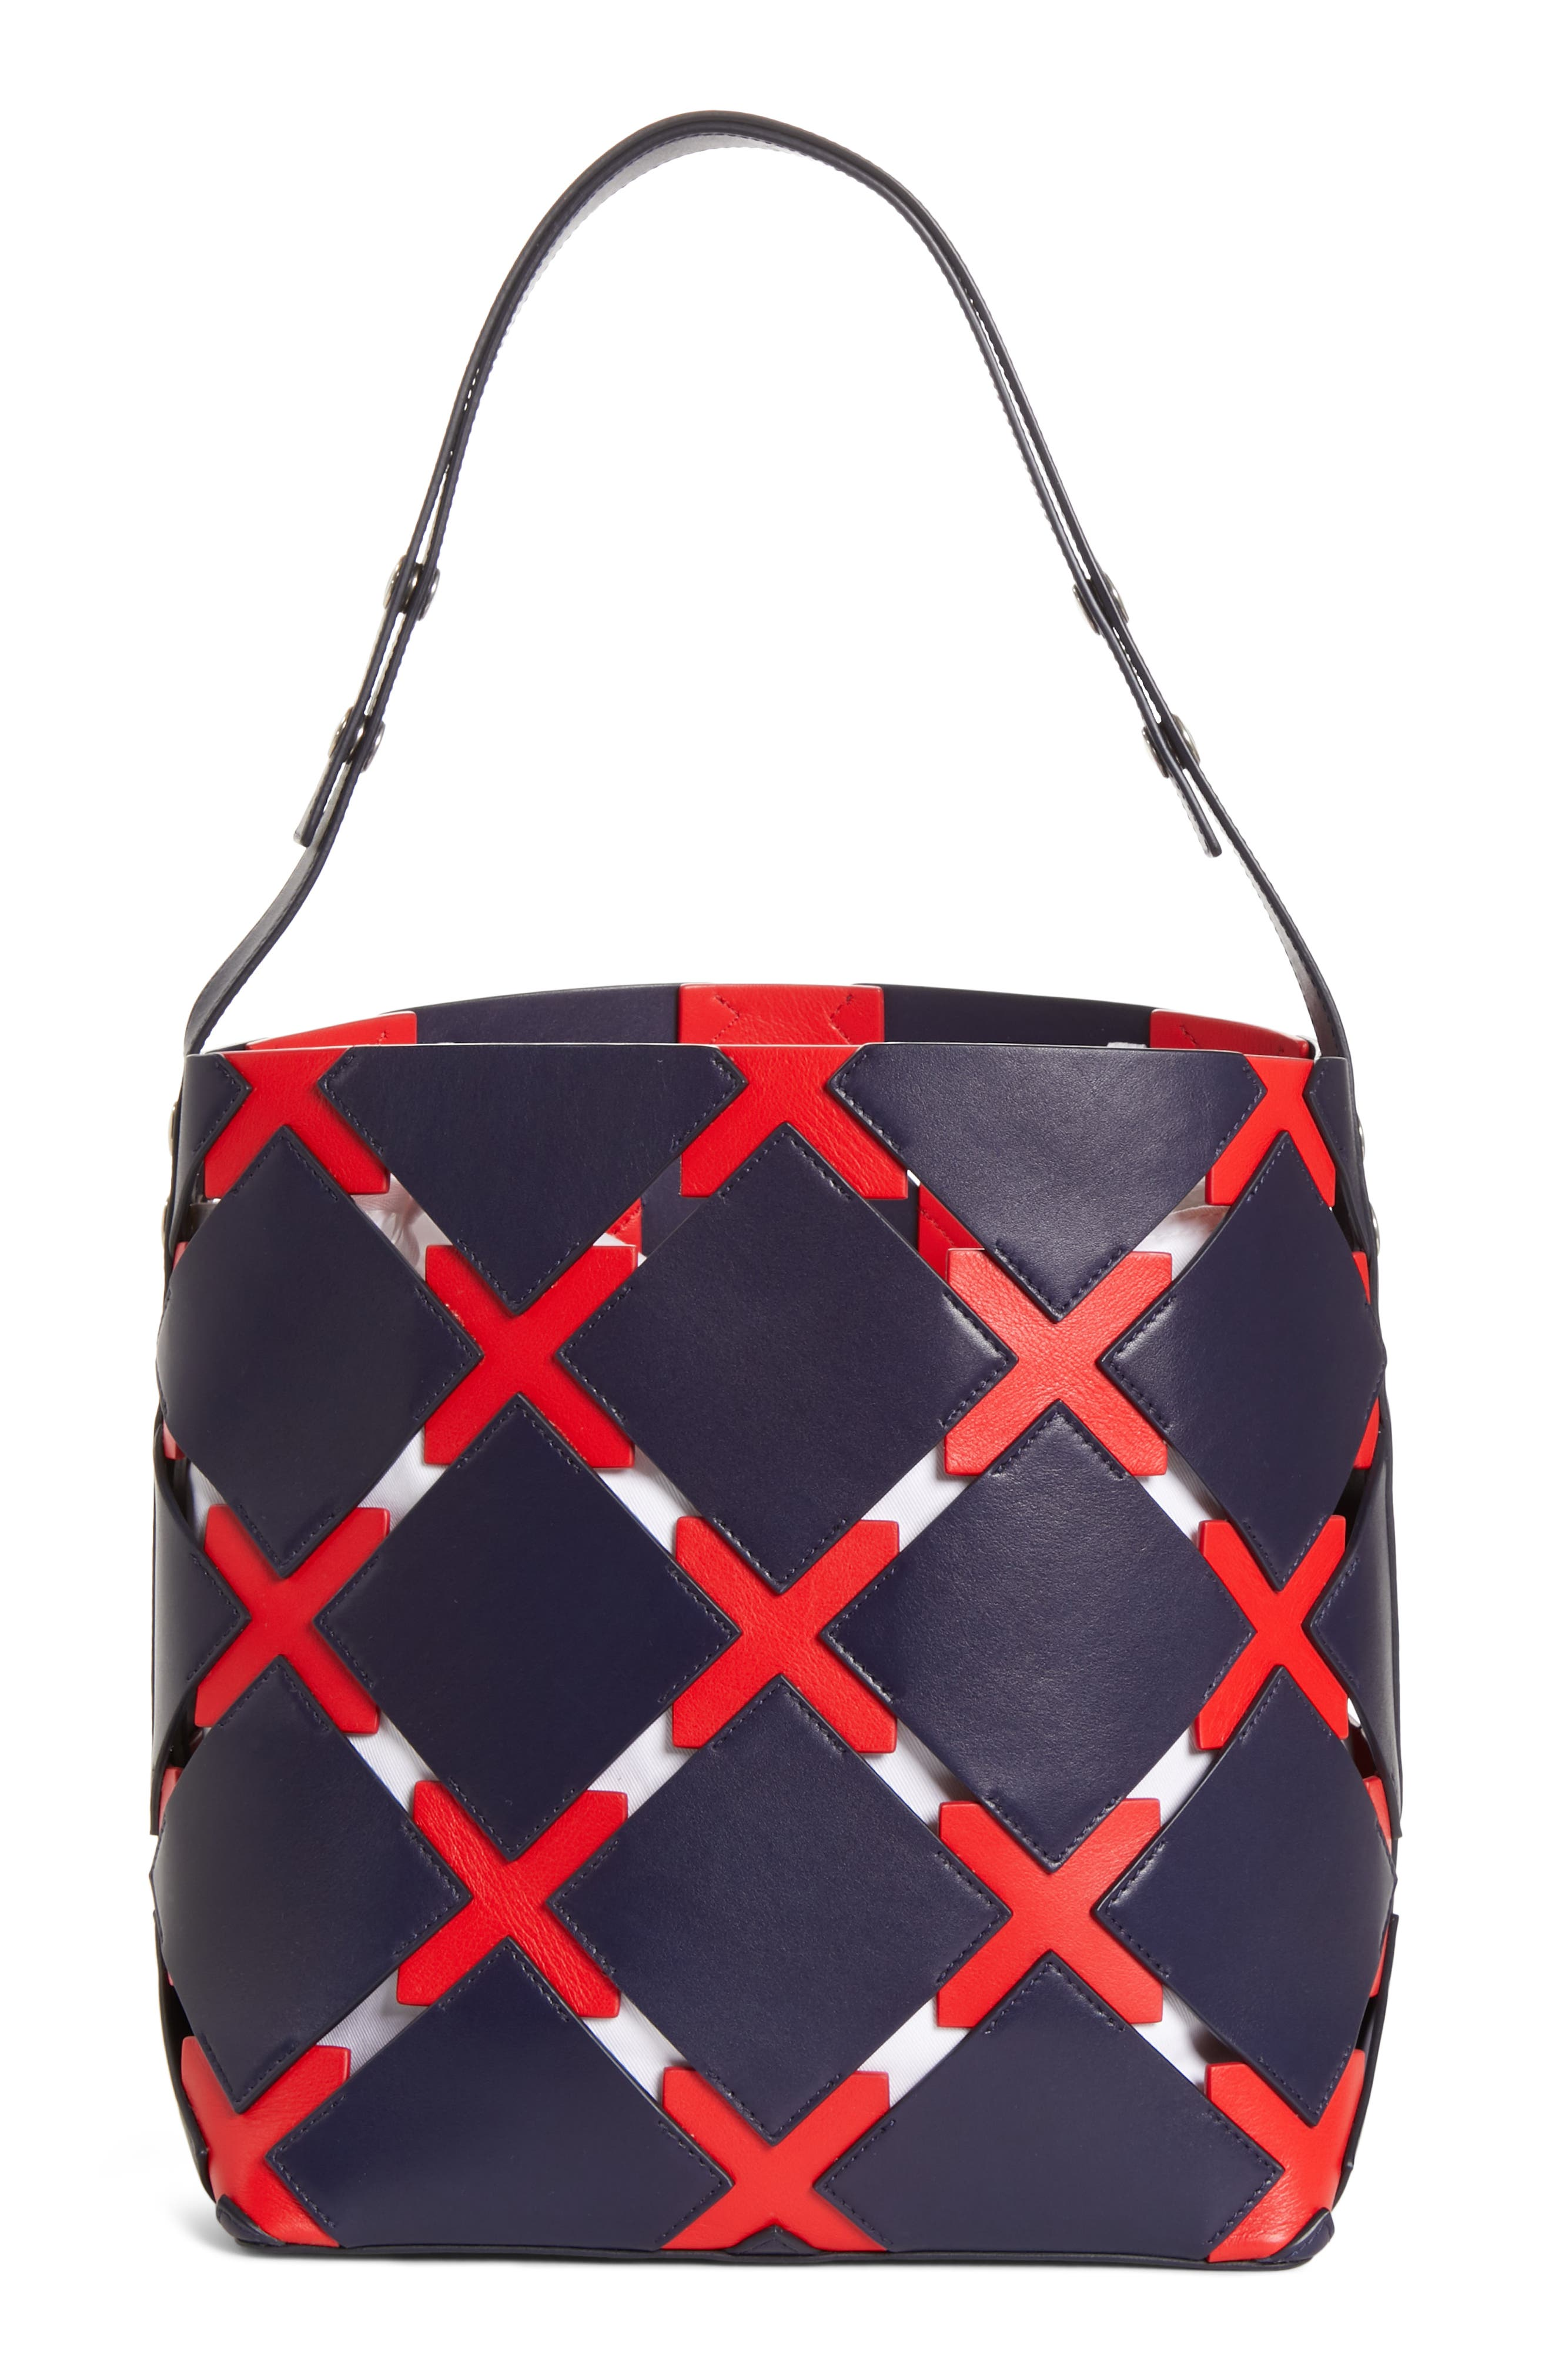 CALVIN KLEIN 205W39NYC, Patchwork Quilt Leather Bucket Bag, Alternate thumbnail 3, color, 424